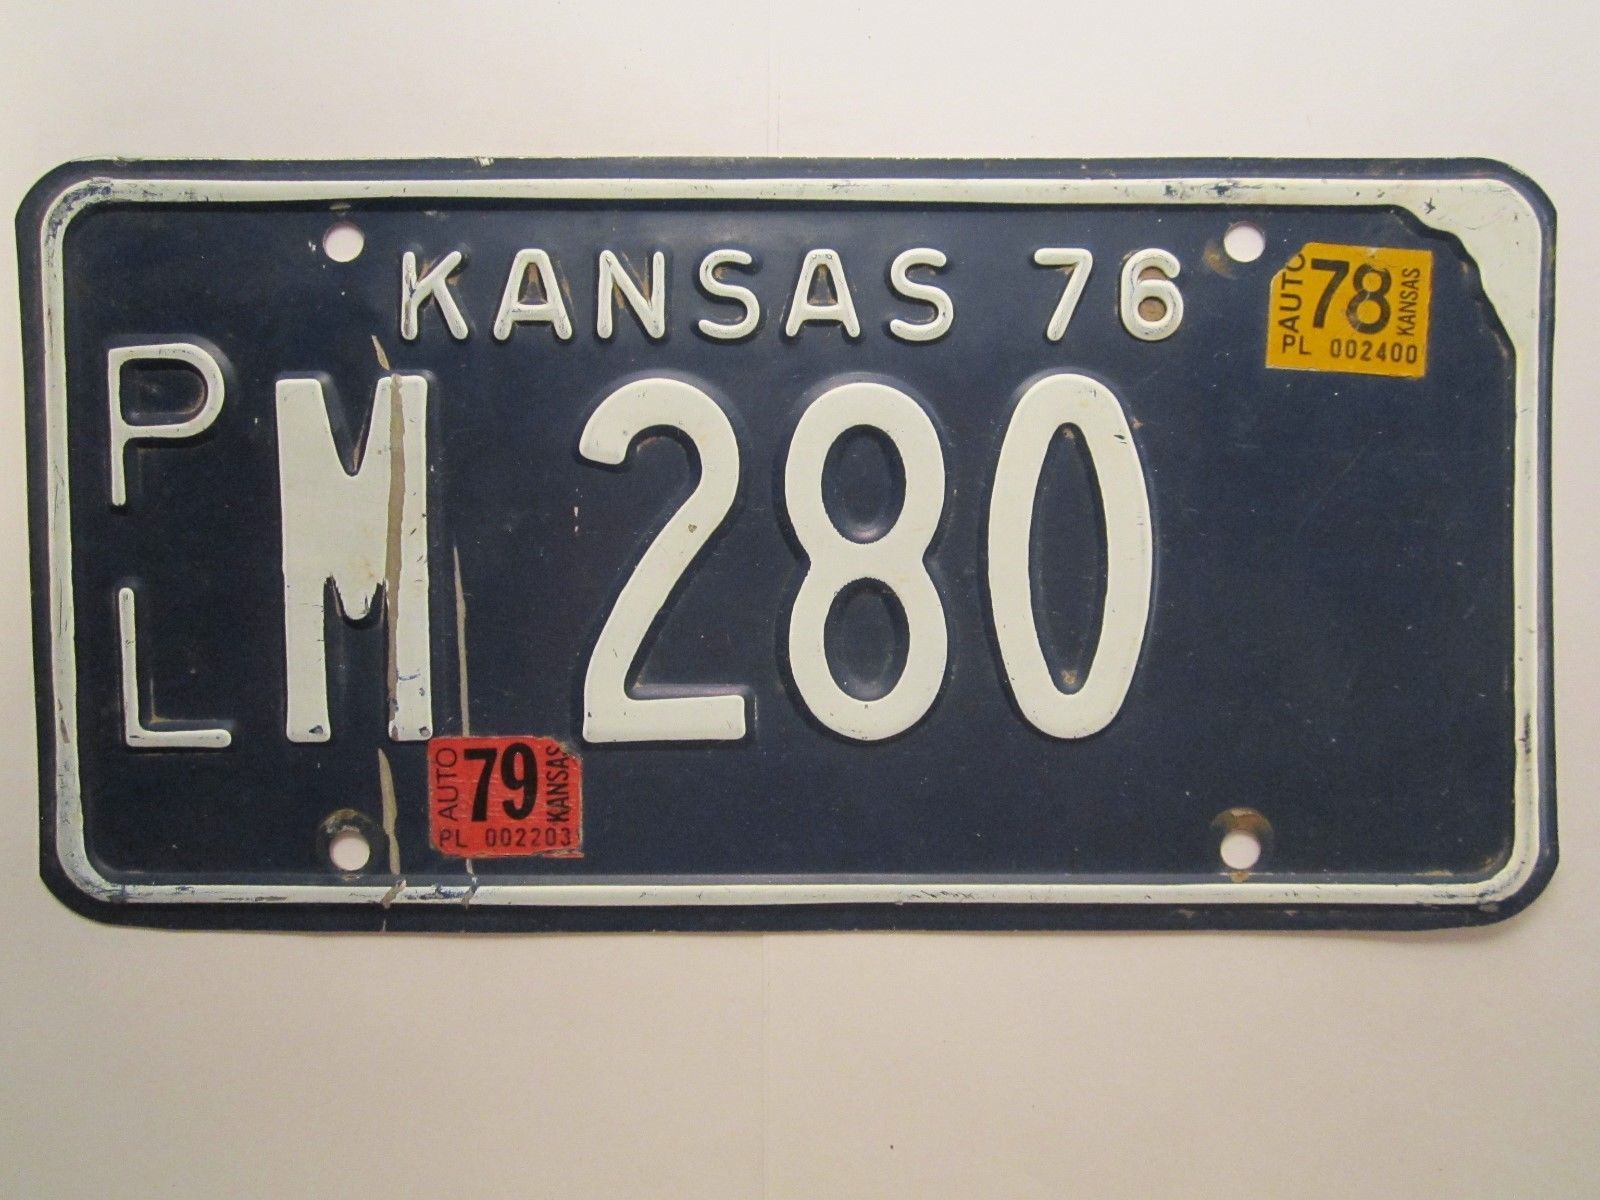 Primary image for LICENSE PLATE Car Tag 1976 KANSAS PL M 280 [Z274]